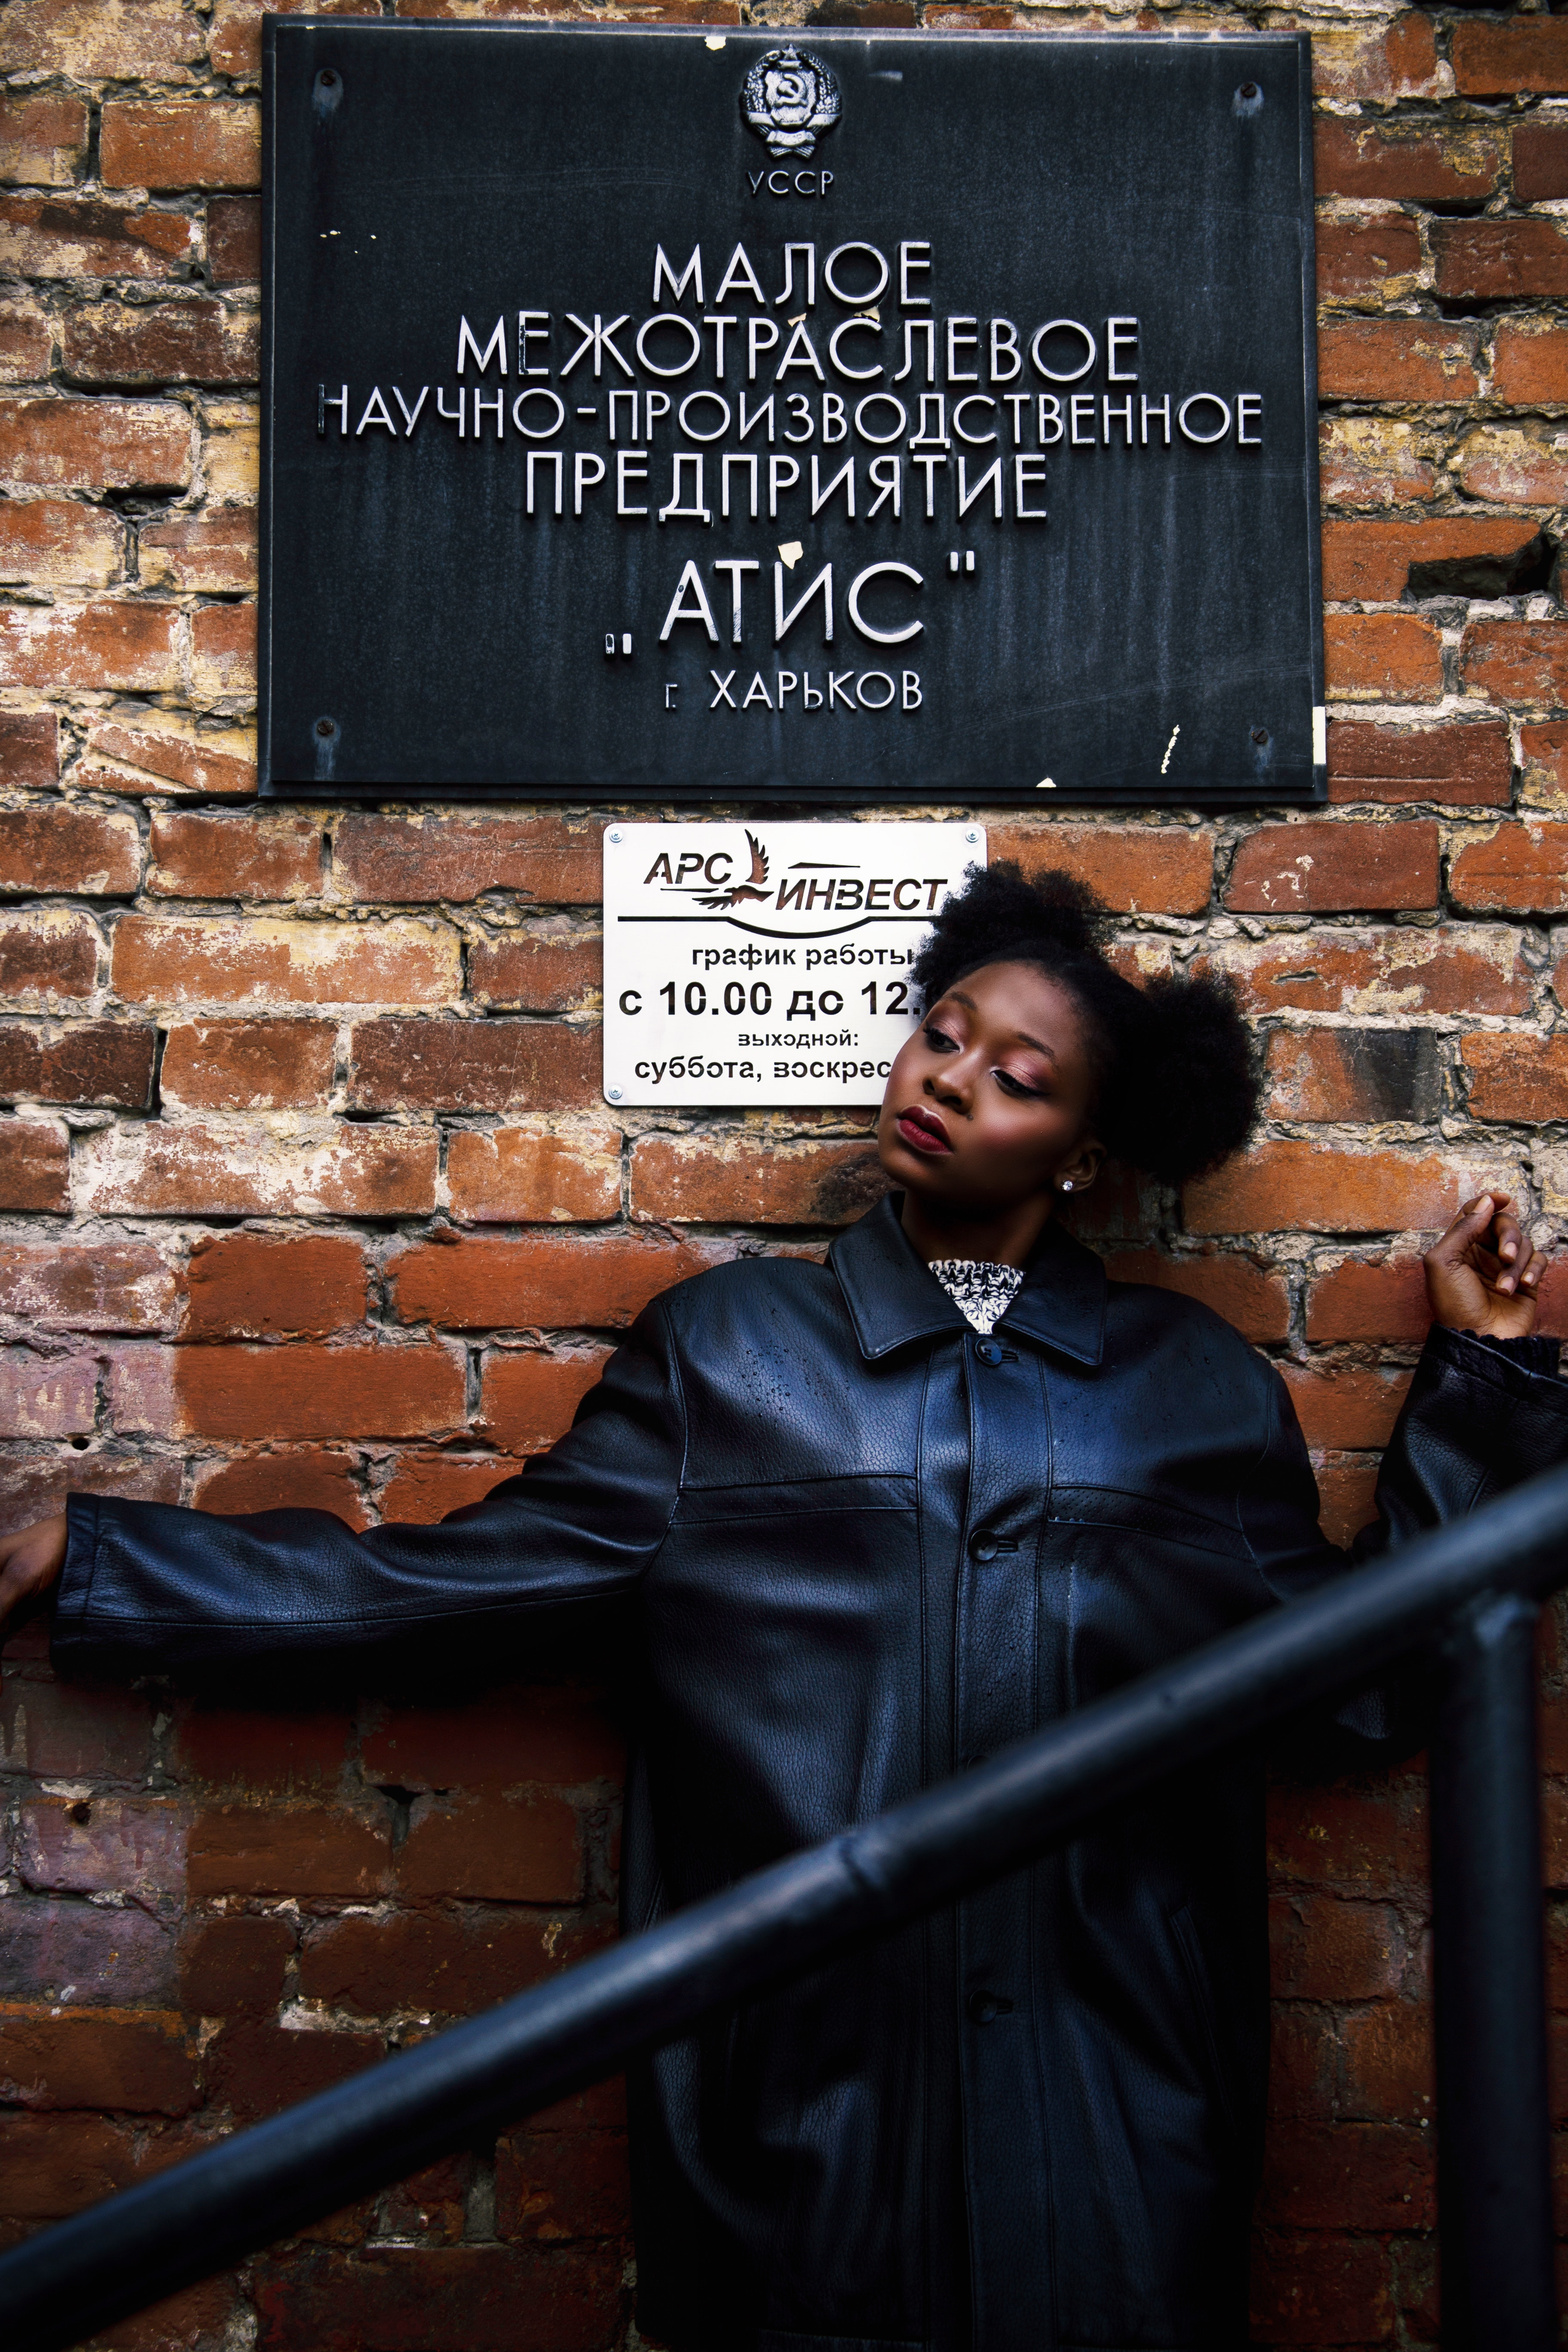 Woman in Black Leather Coat Leaning on Brick Wall, Lady, Woman, Wear, Wall, HQ Photo